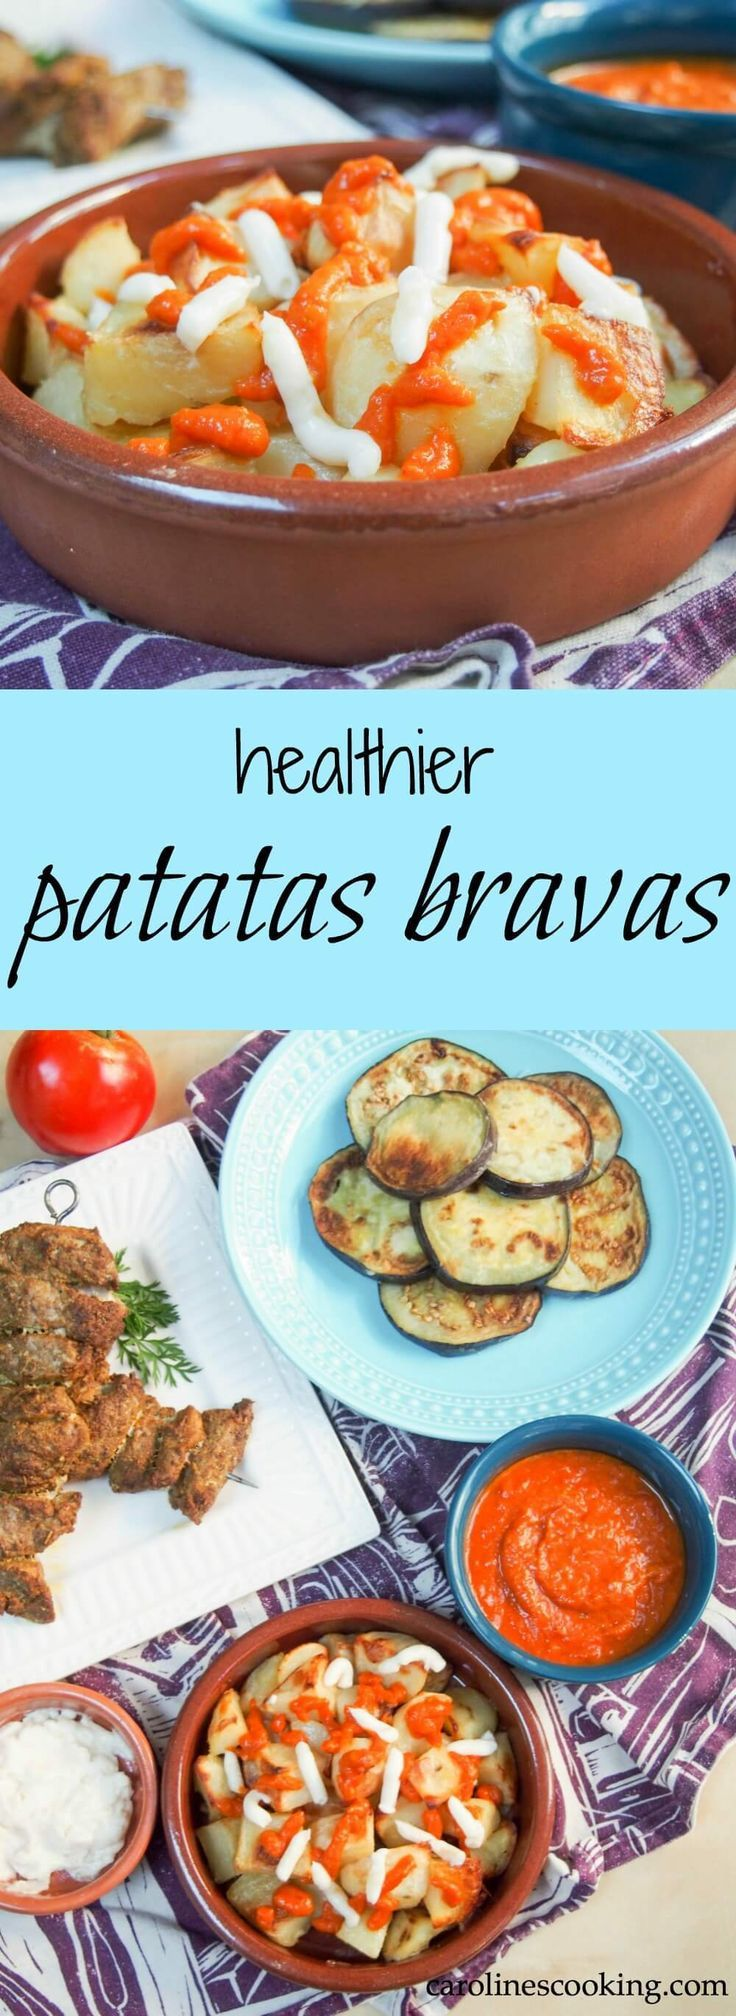 86 best spanish and portuguese food recipes images on pinterest these healthier patatas bravas are roasted rather than fried and with an easy spicy sauce they make the classic spanish potato tapas easy to enjoy forumfinder Images